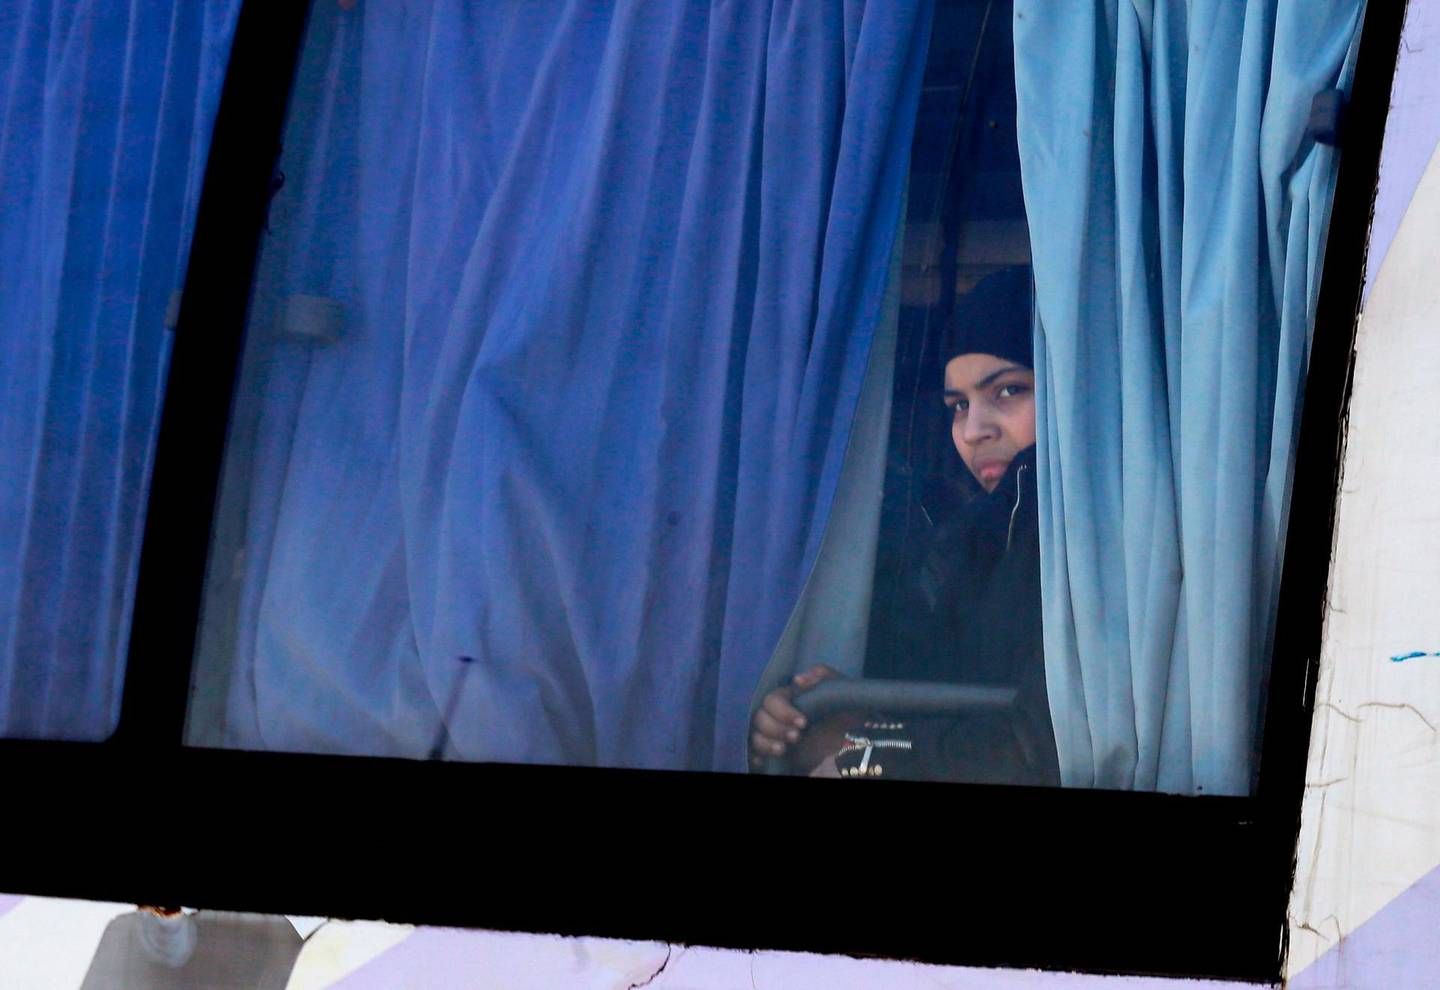 A Syrian woman looks out of the window of a bus as Syrian civilians and rebel fighters evacuated from Eastern Ghouta arrive in a government-held area at the entrance of Harasta on the outskirts of the capital Damascus, on March 26, 2018.  More than 2,500 Syrian rebels and civilians prepared to leave Eastern Ghouta on March 26 after the largest exodus yet from the opposition enclave, as talks stalled over the final pocket of resistance. / AFP PHOTO / LOUAI BESHARA